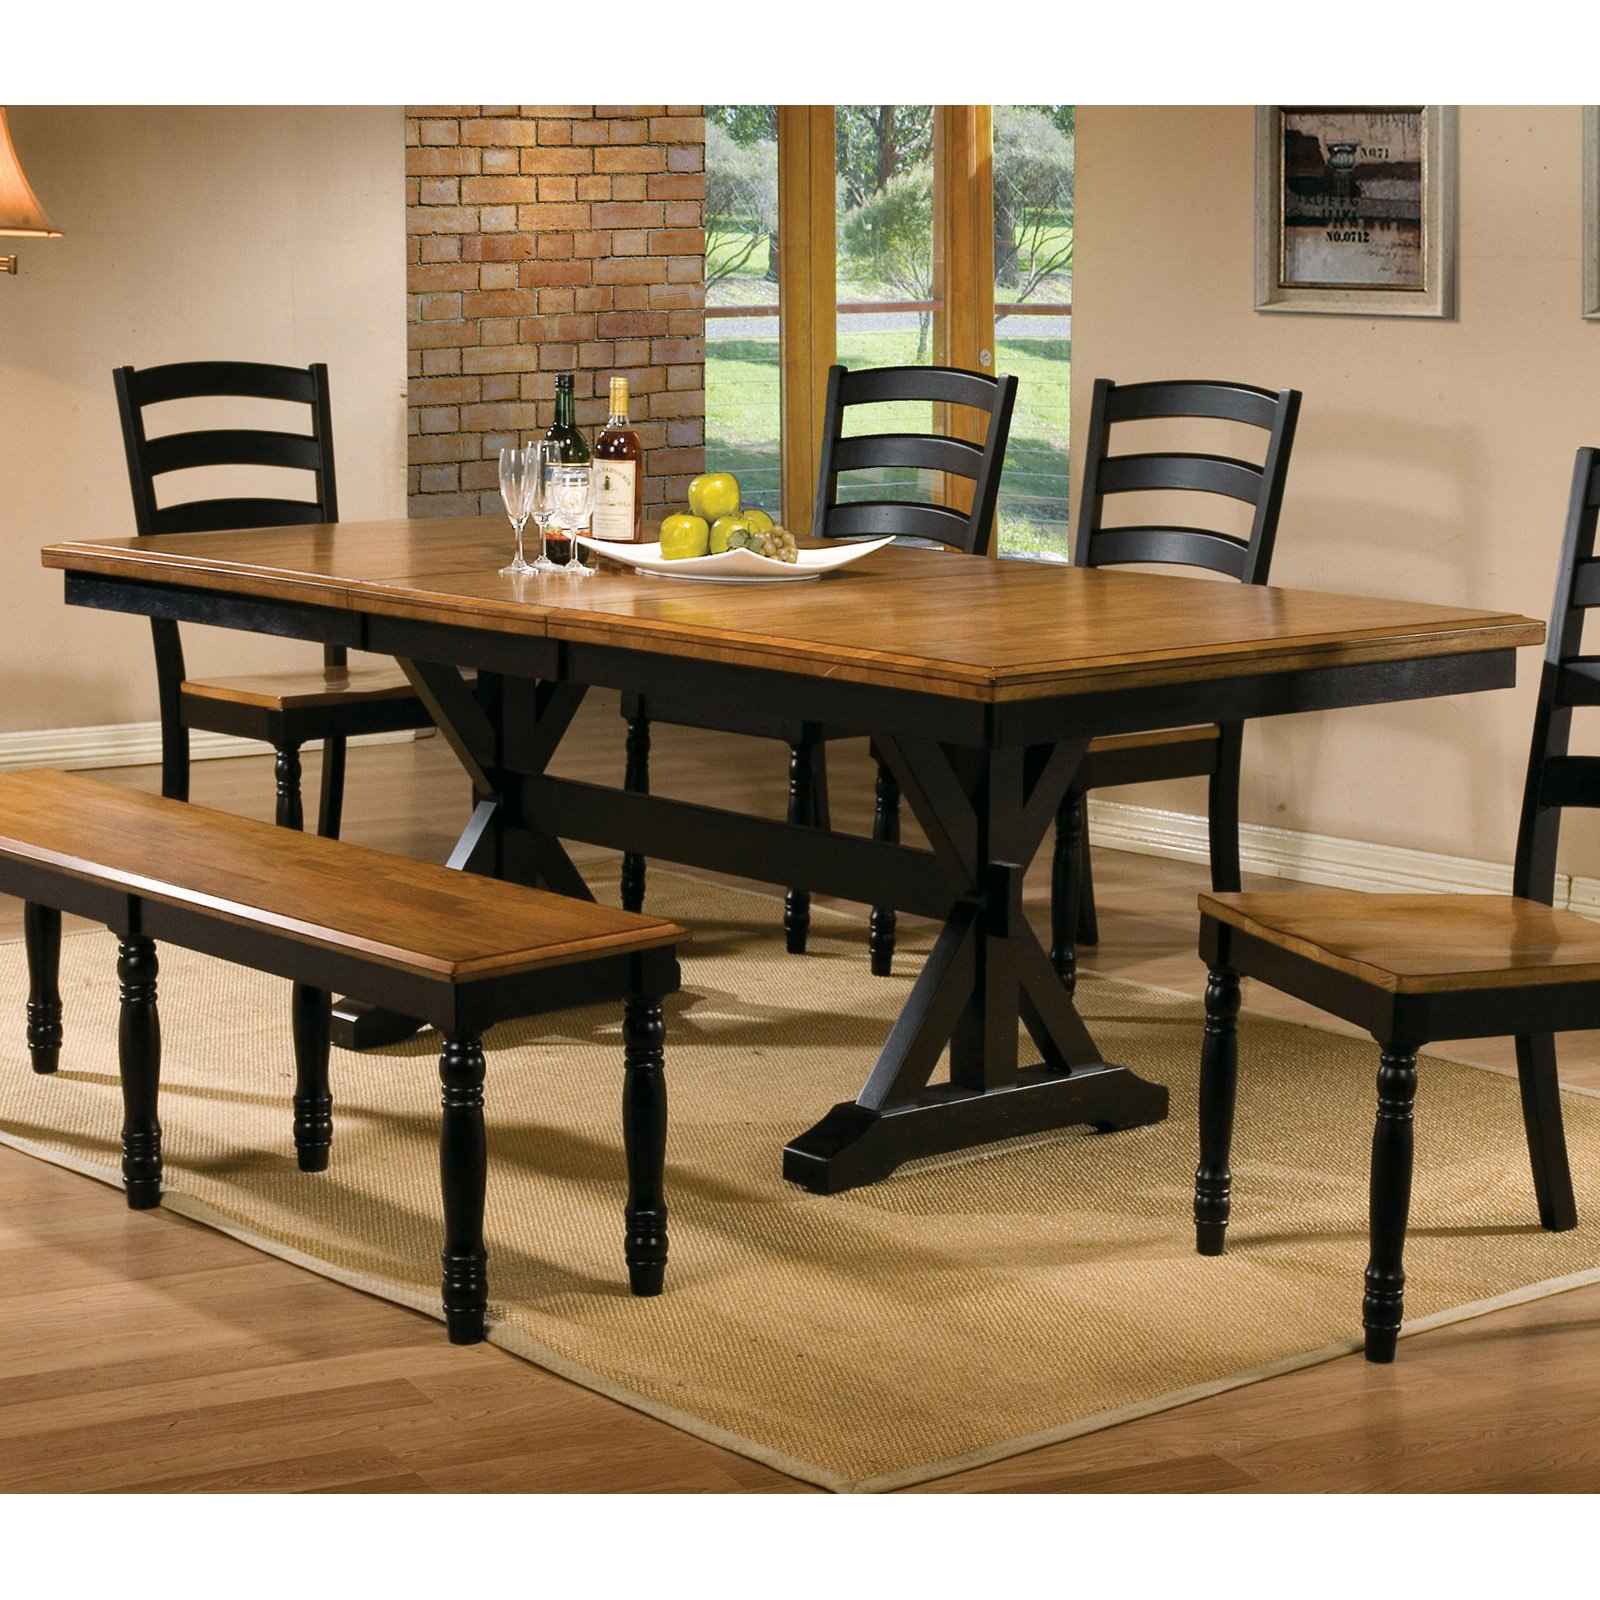 Trestle Dining Table With 18 In. Butterfly Leaf   Walmart.com